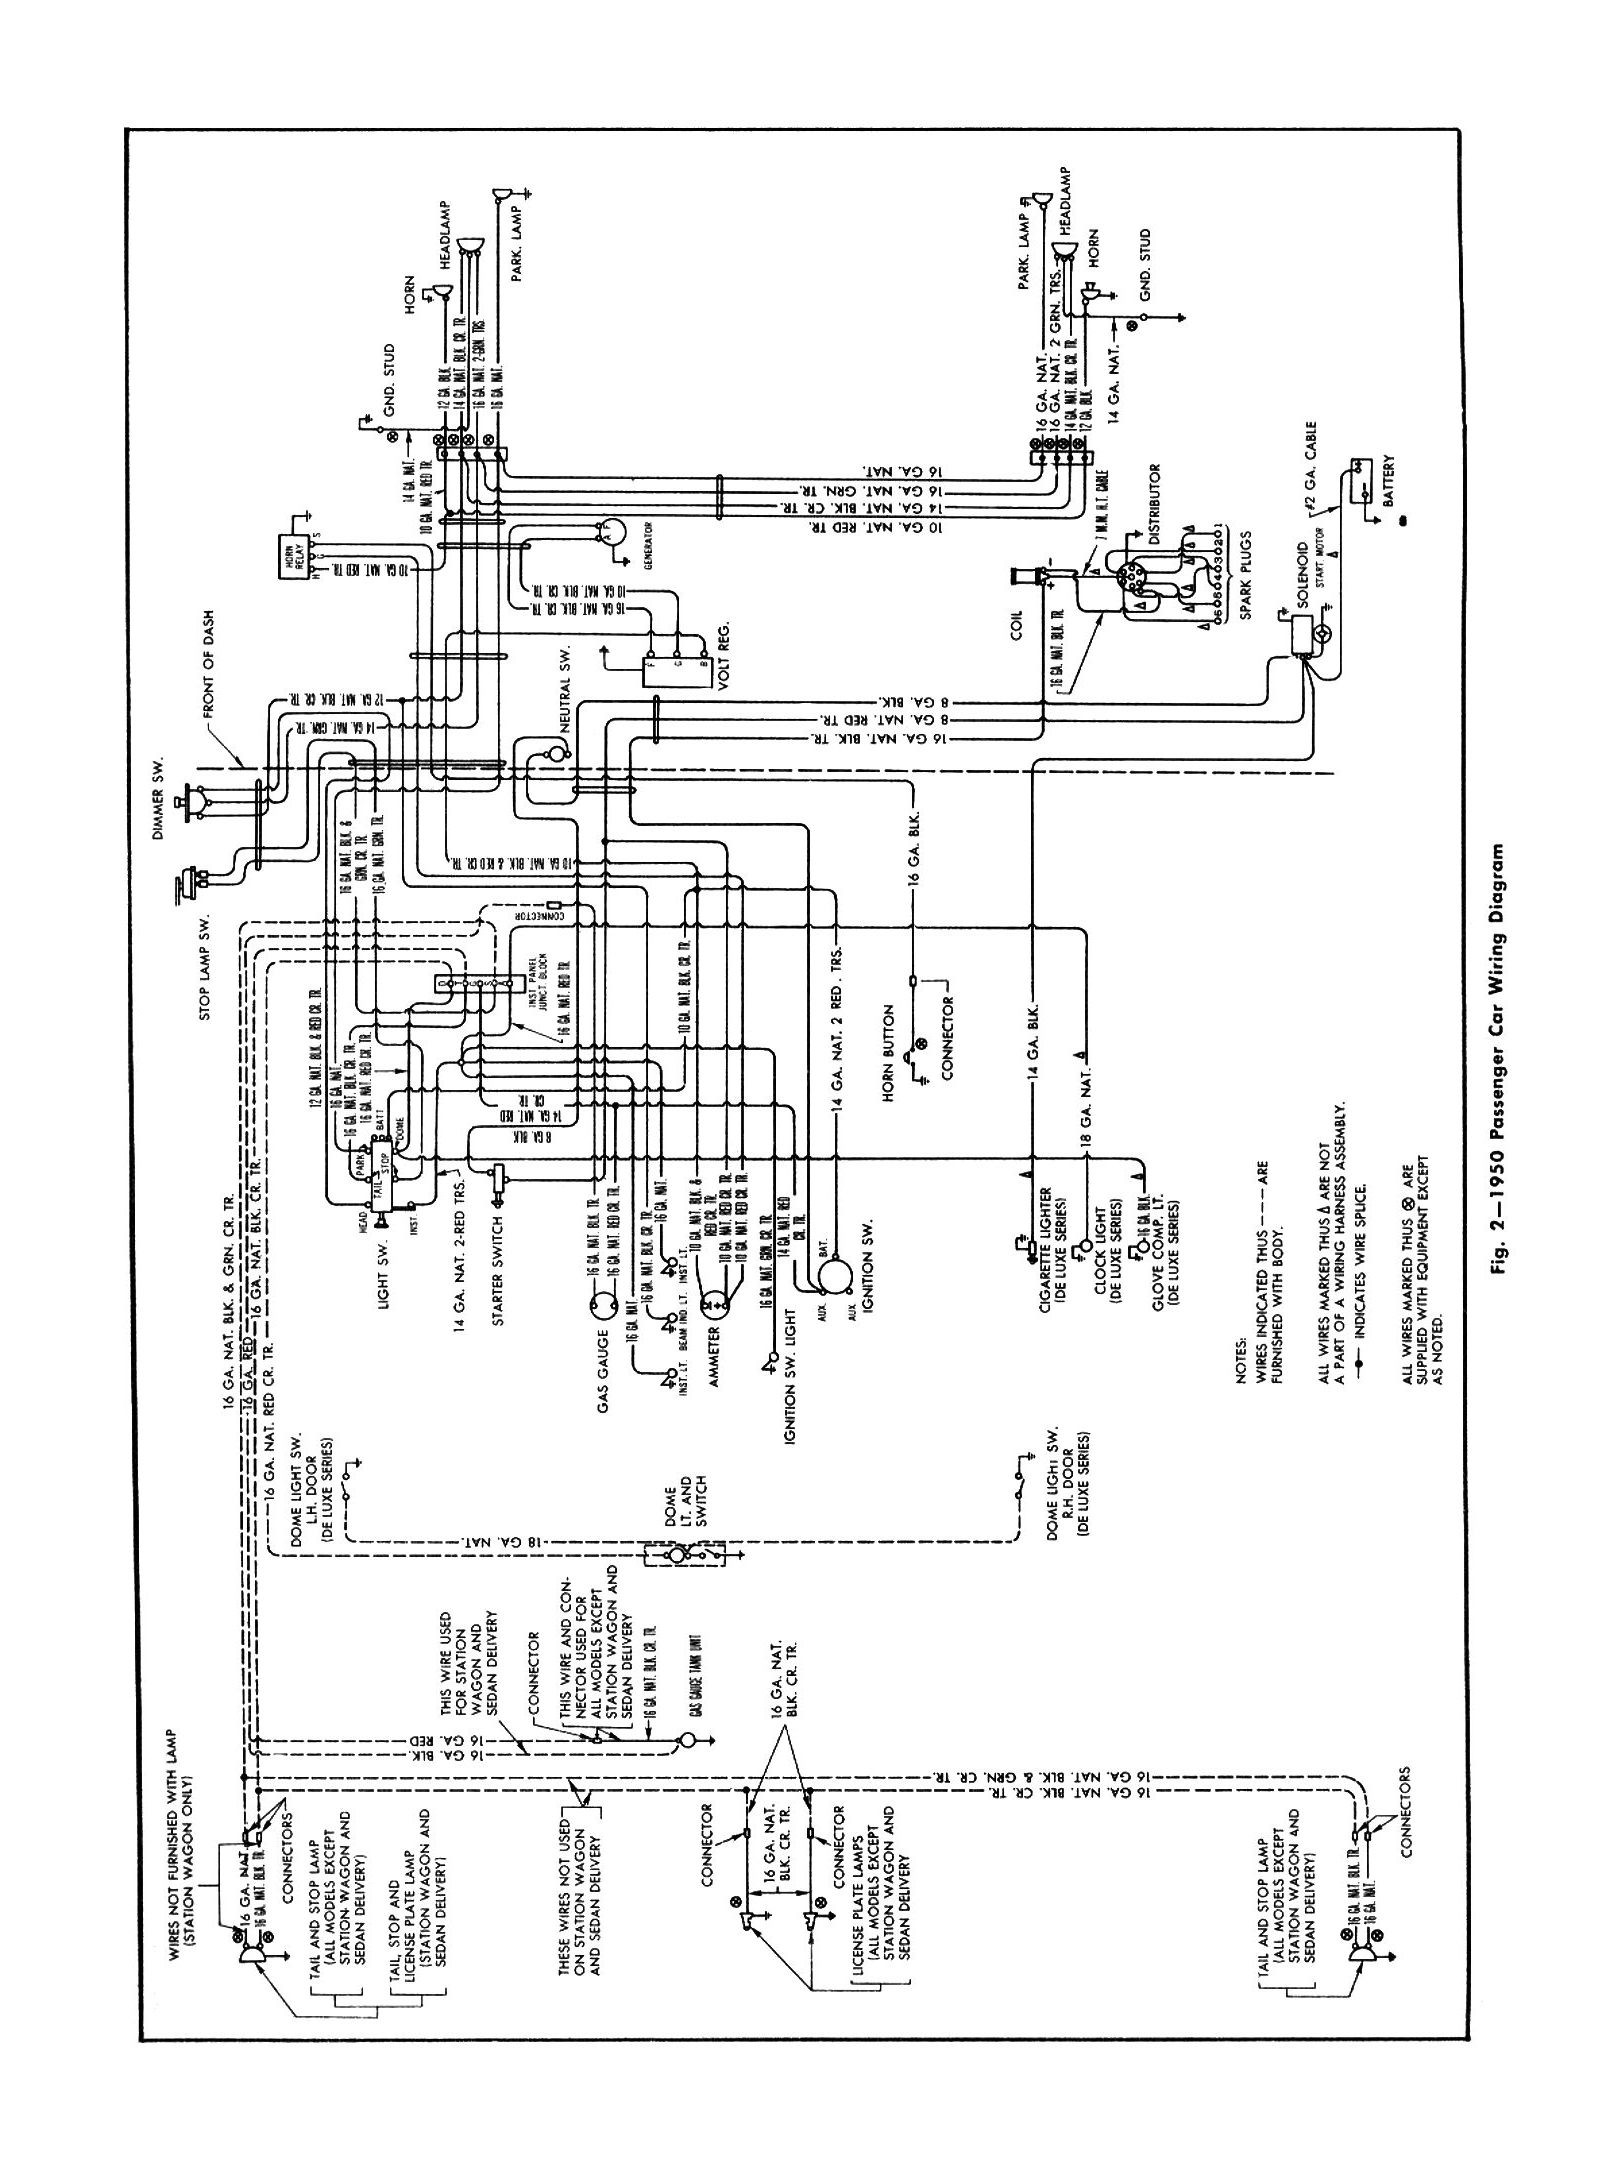 general wiring diagram for the 195559 gmc trucks series